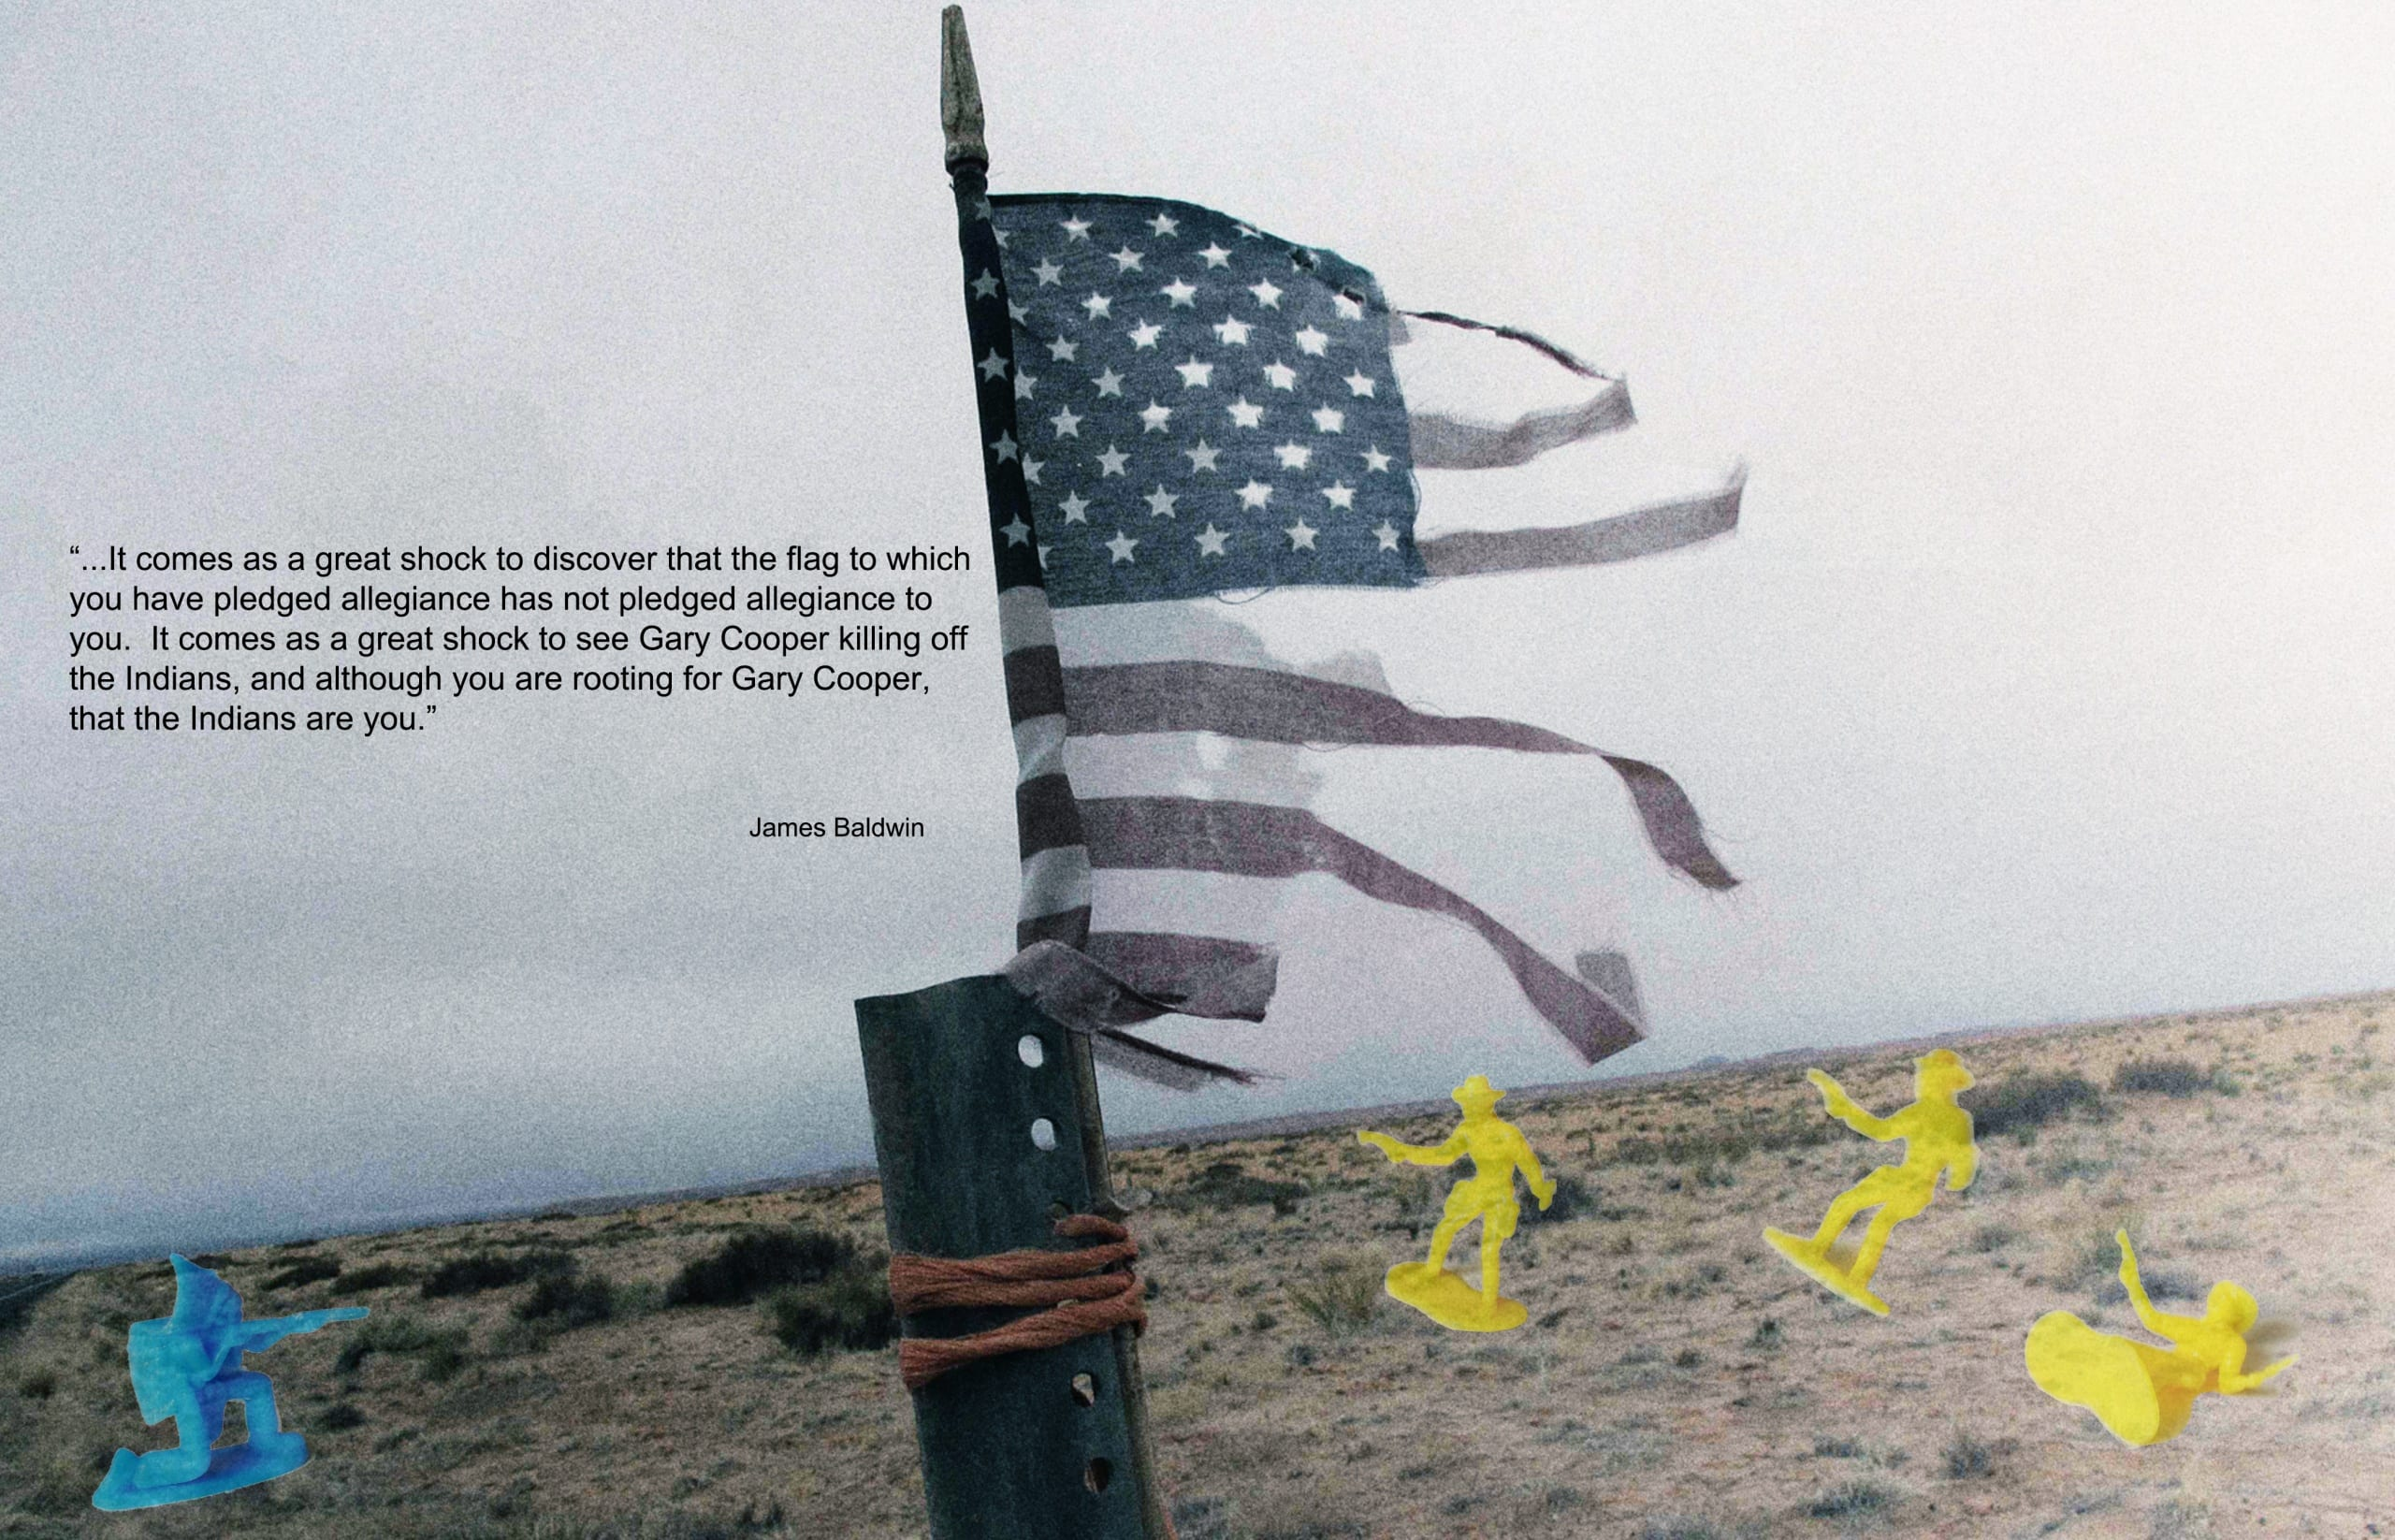 """Photo of tattered American flag secured to a post in a rural landscape; small children's toys meant to depict """"Cowboys and Indians"""" are superimposed over the bottom third of the image. A quote from James Baldwin appears directly over the photograph"""